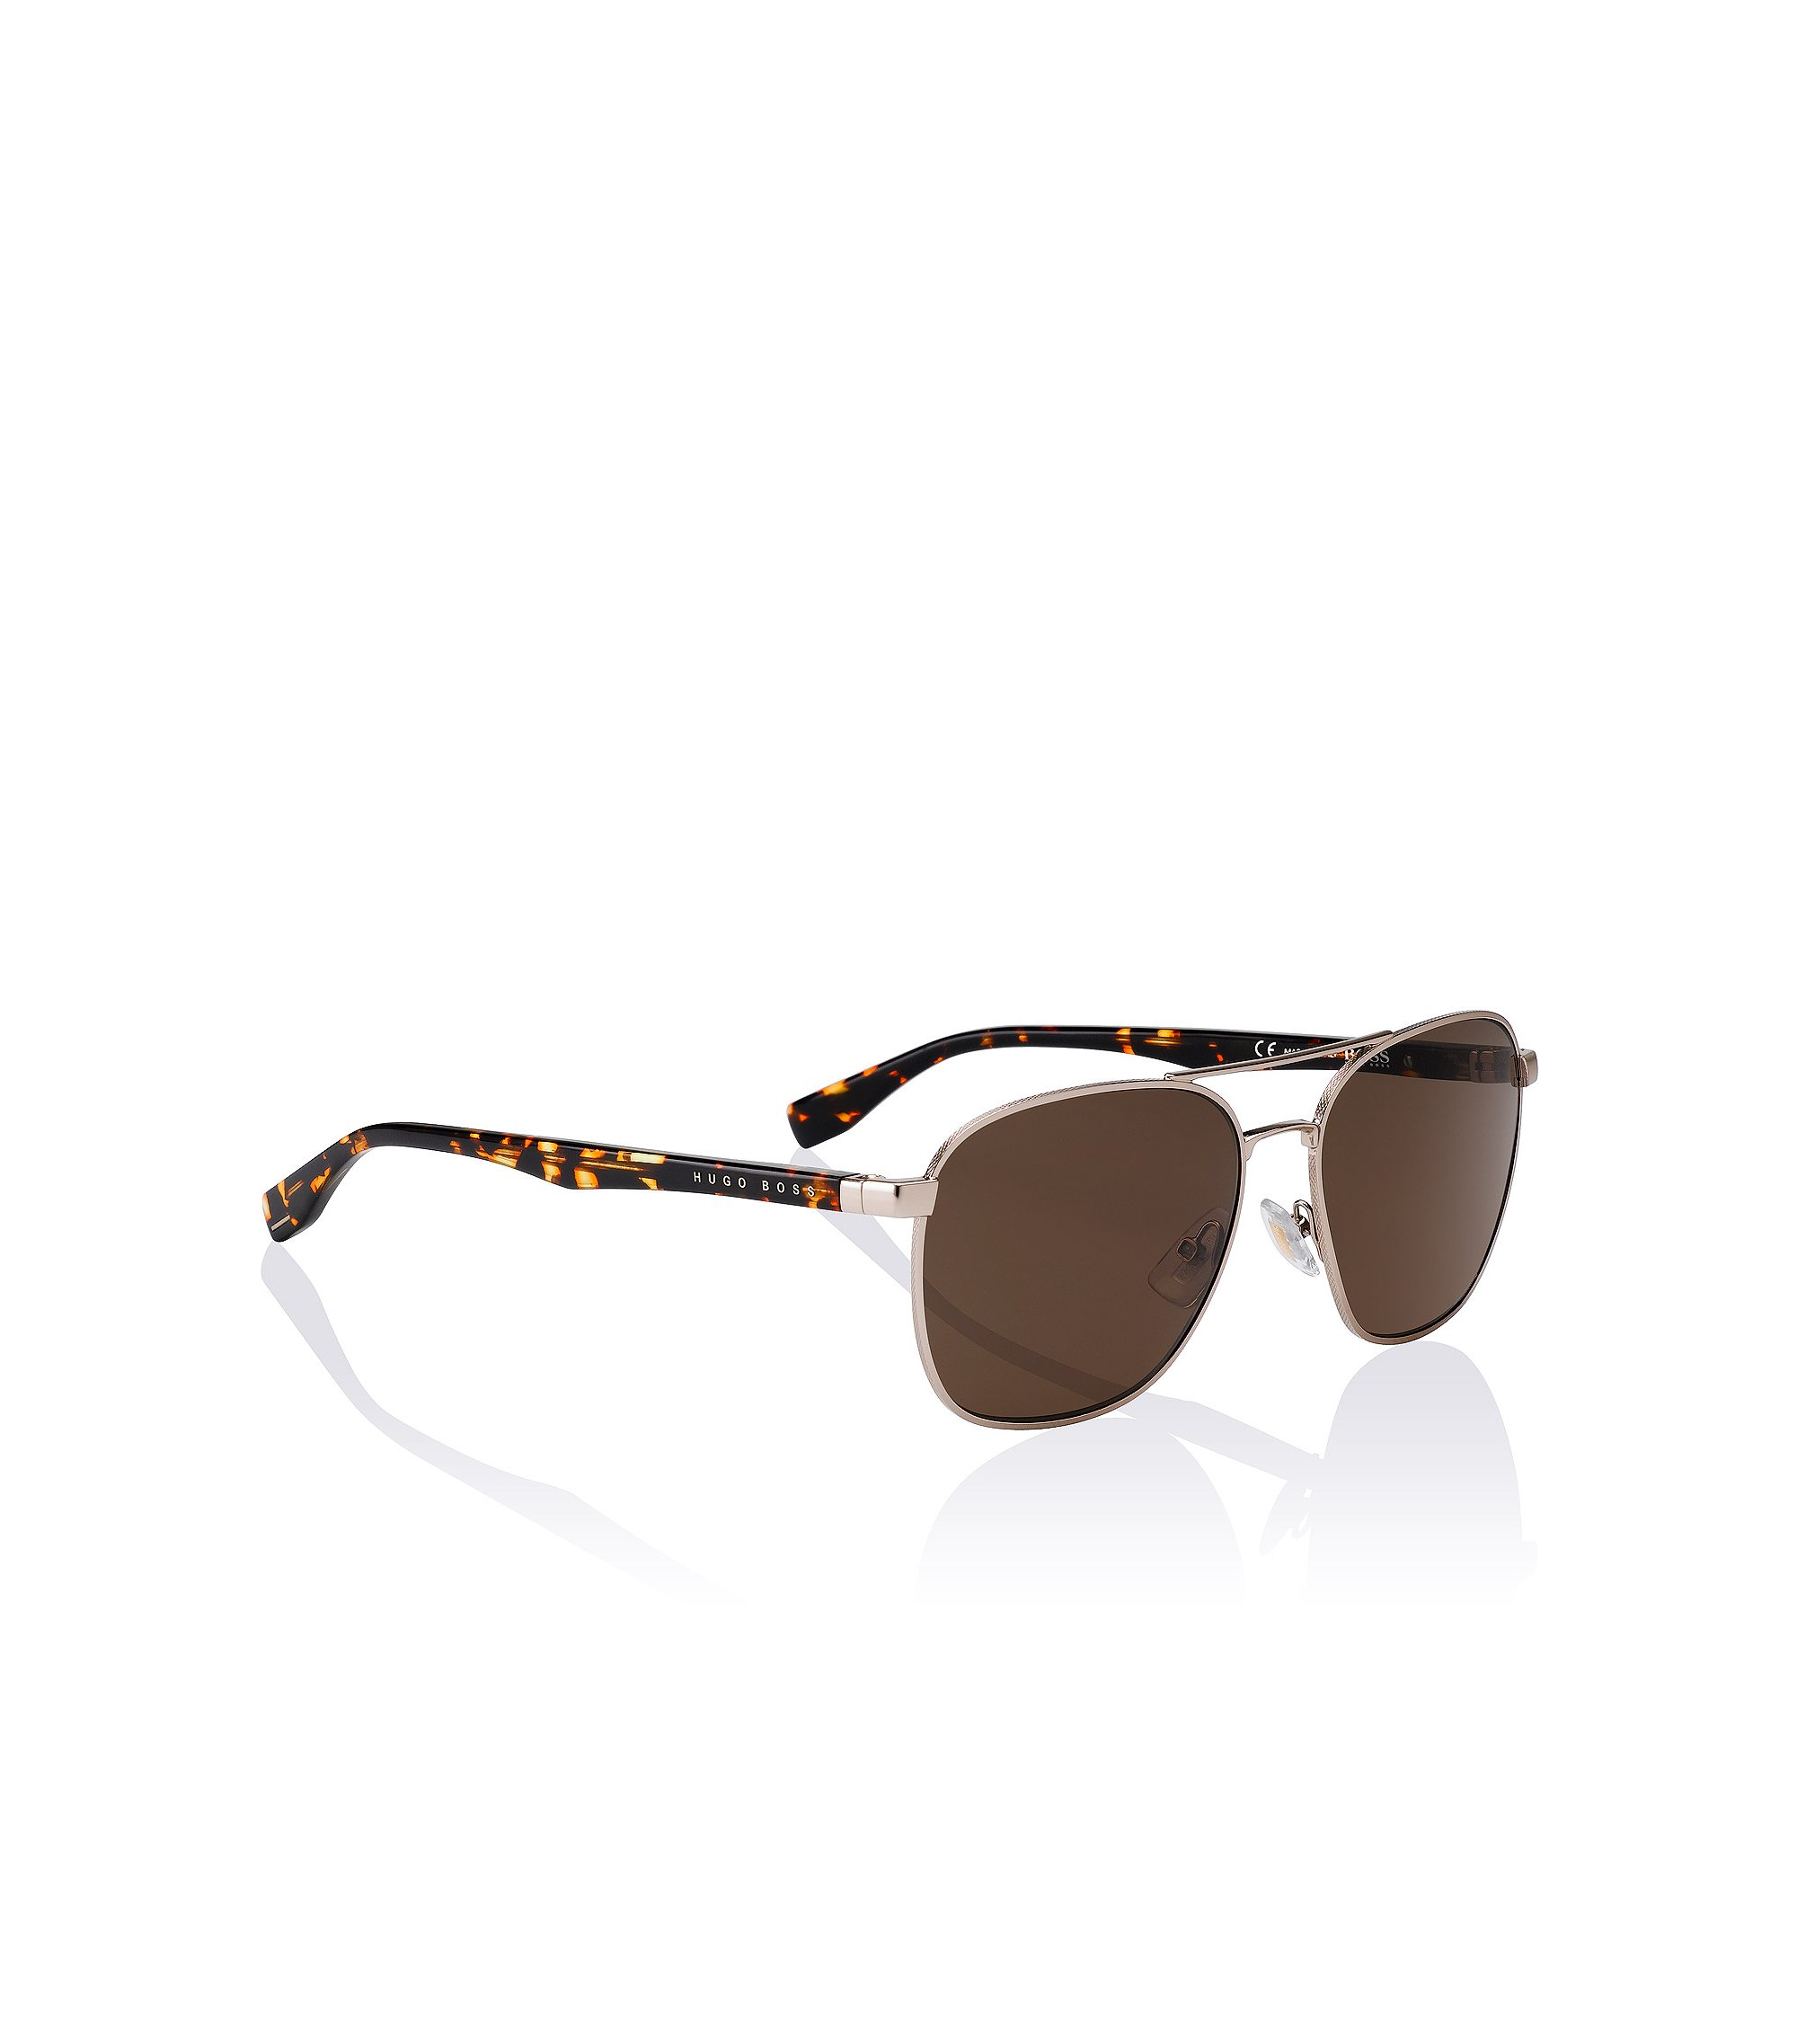 Aviator-Sonnenbrille ´BOSS 0701/S`, Assorted-Pre-Pack